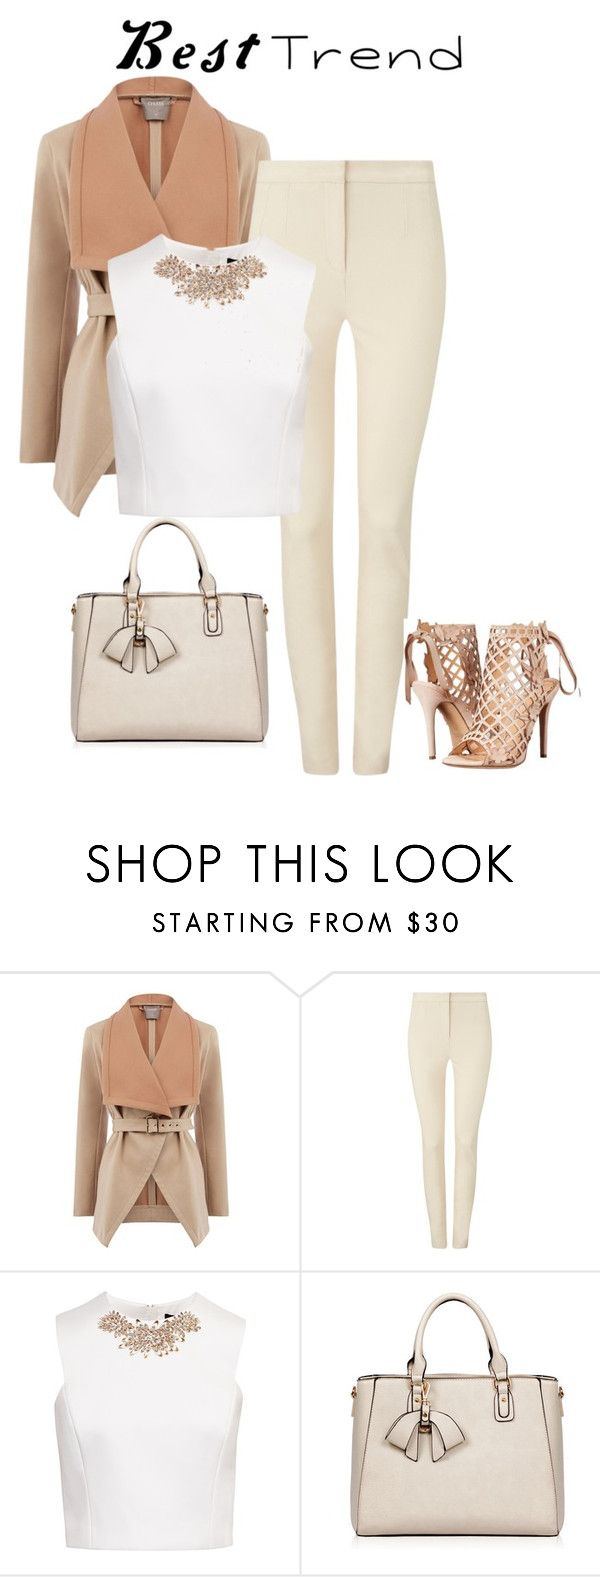 """""""Best Trend"""" by salahmariamghazaly on Polyvore featuring Oasis, Phase Eight, Ted Baker and Marchesa"""